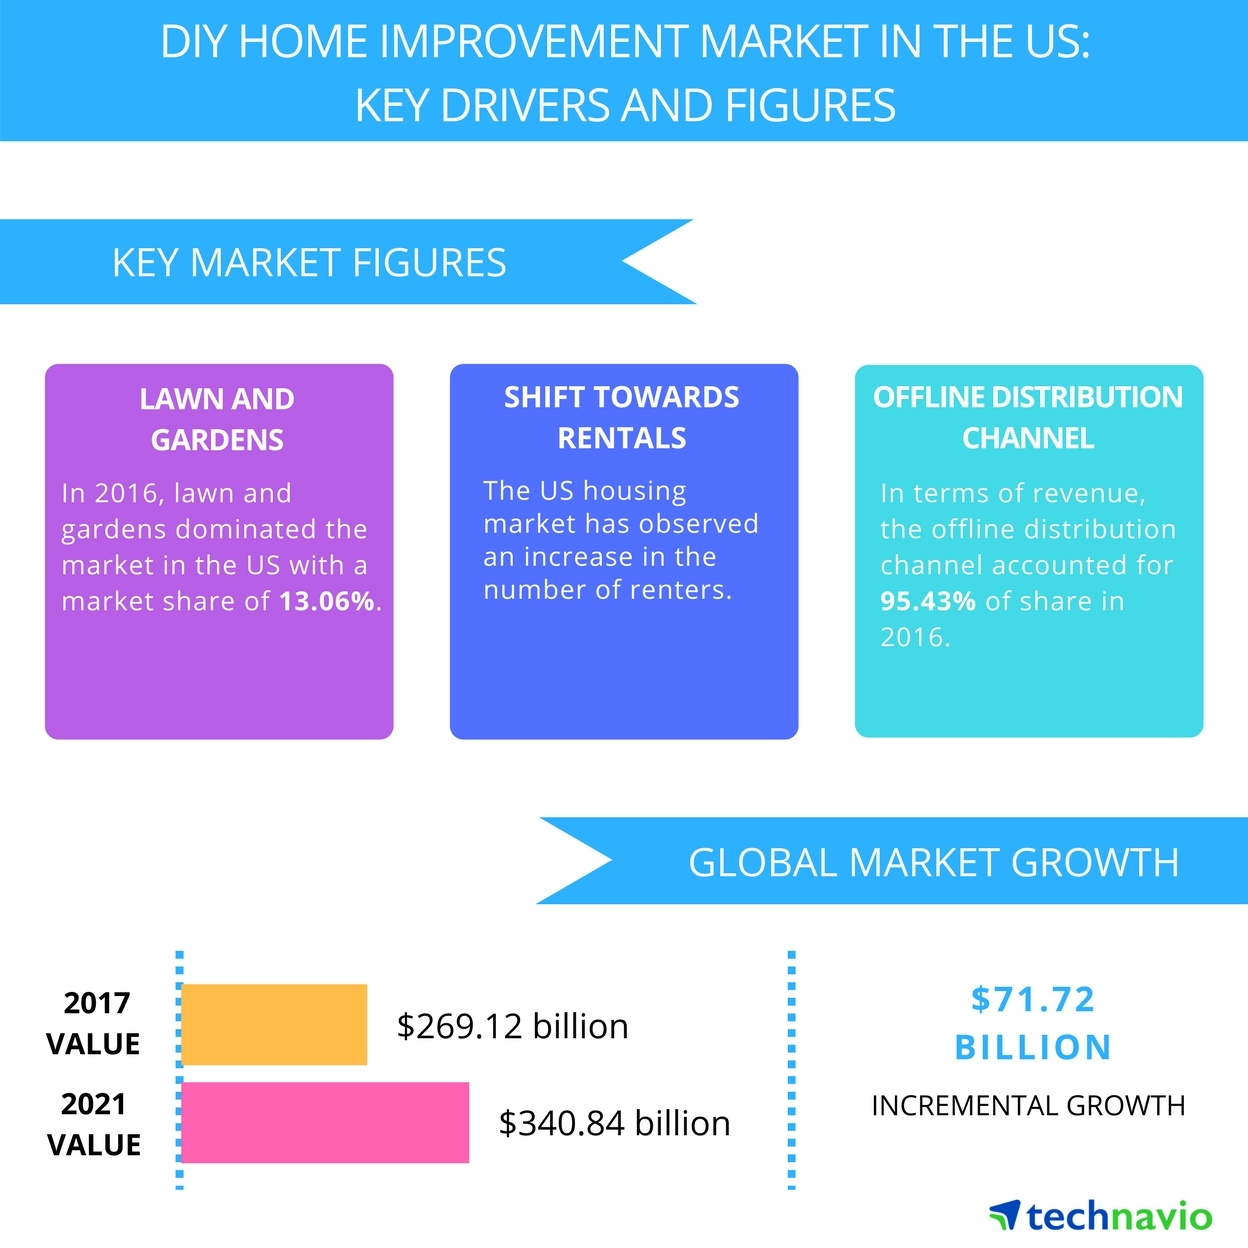 Top 6 Vendors In The Diy Home Improvement Market In The Us From 2017 To 2021 Technavio Business Wire